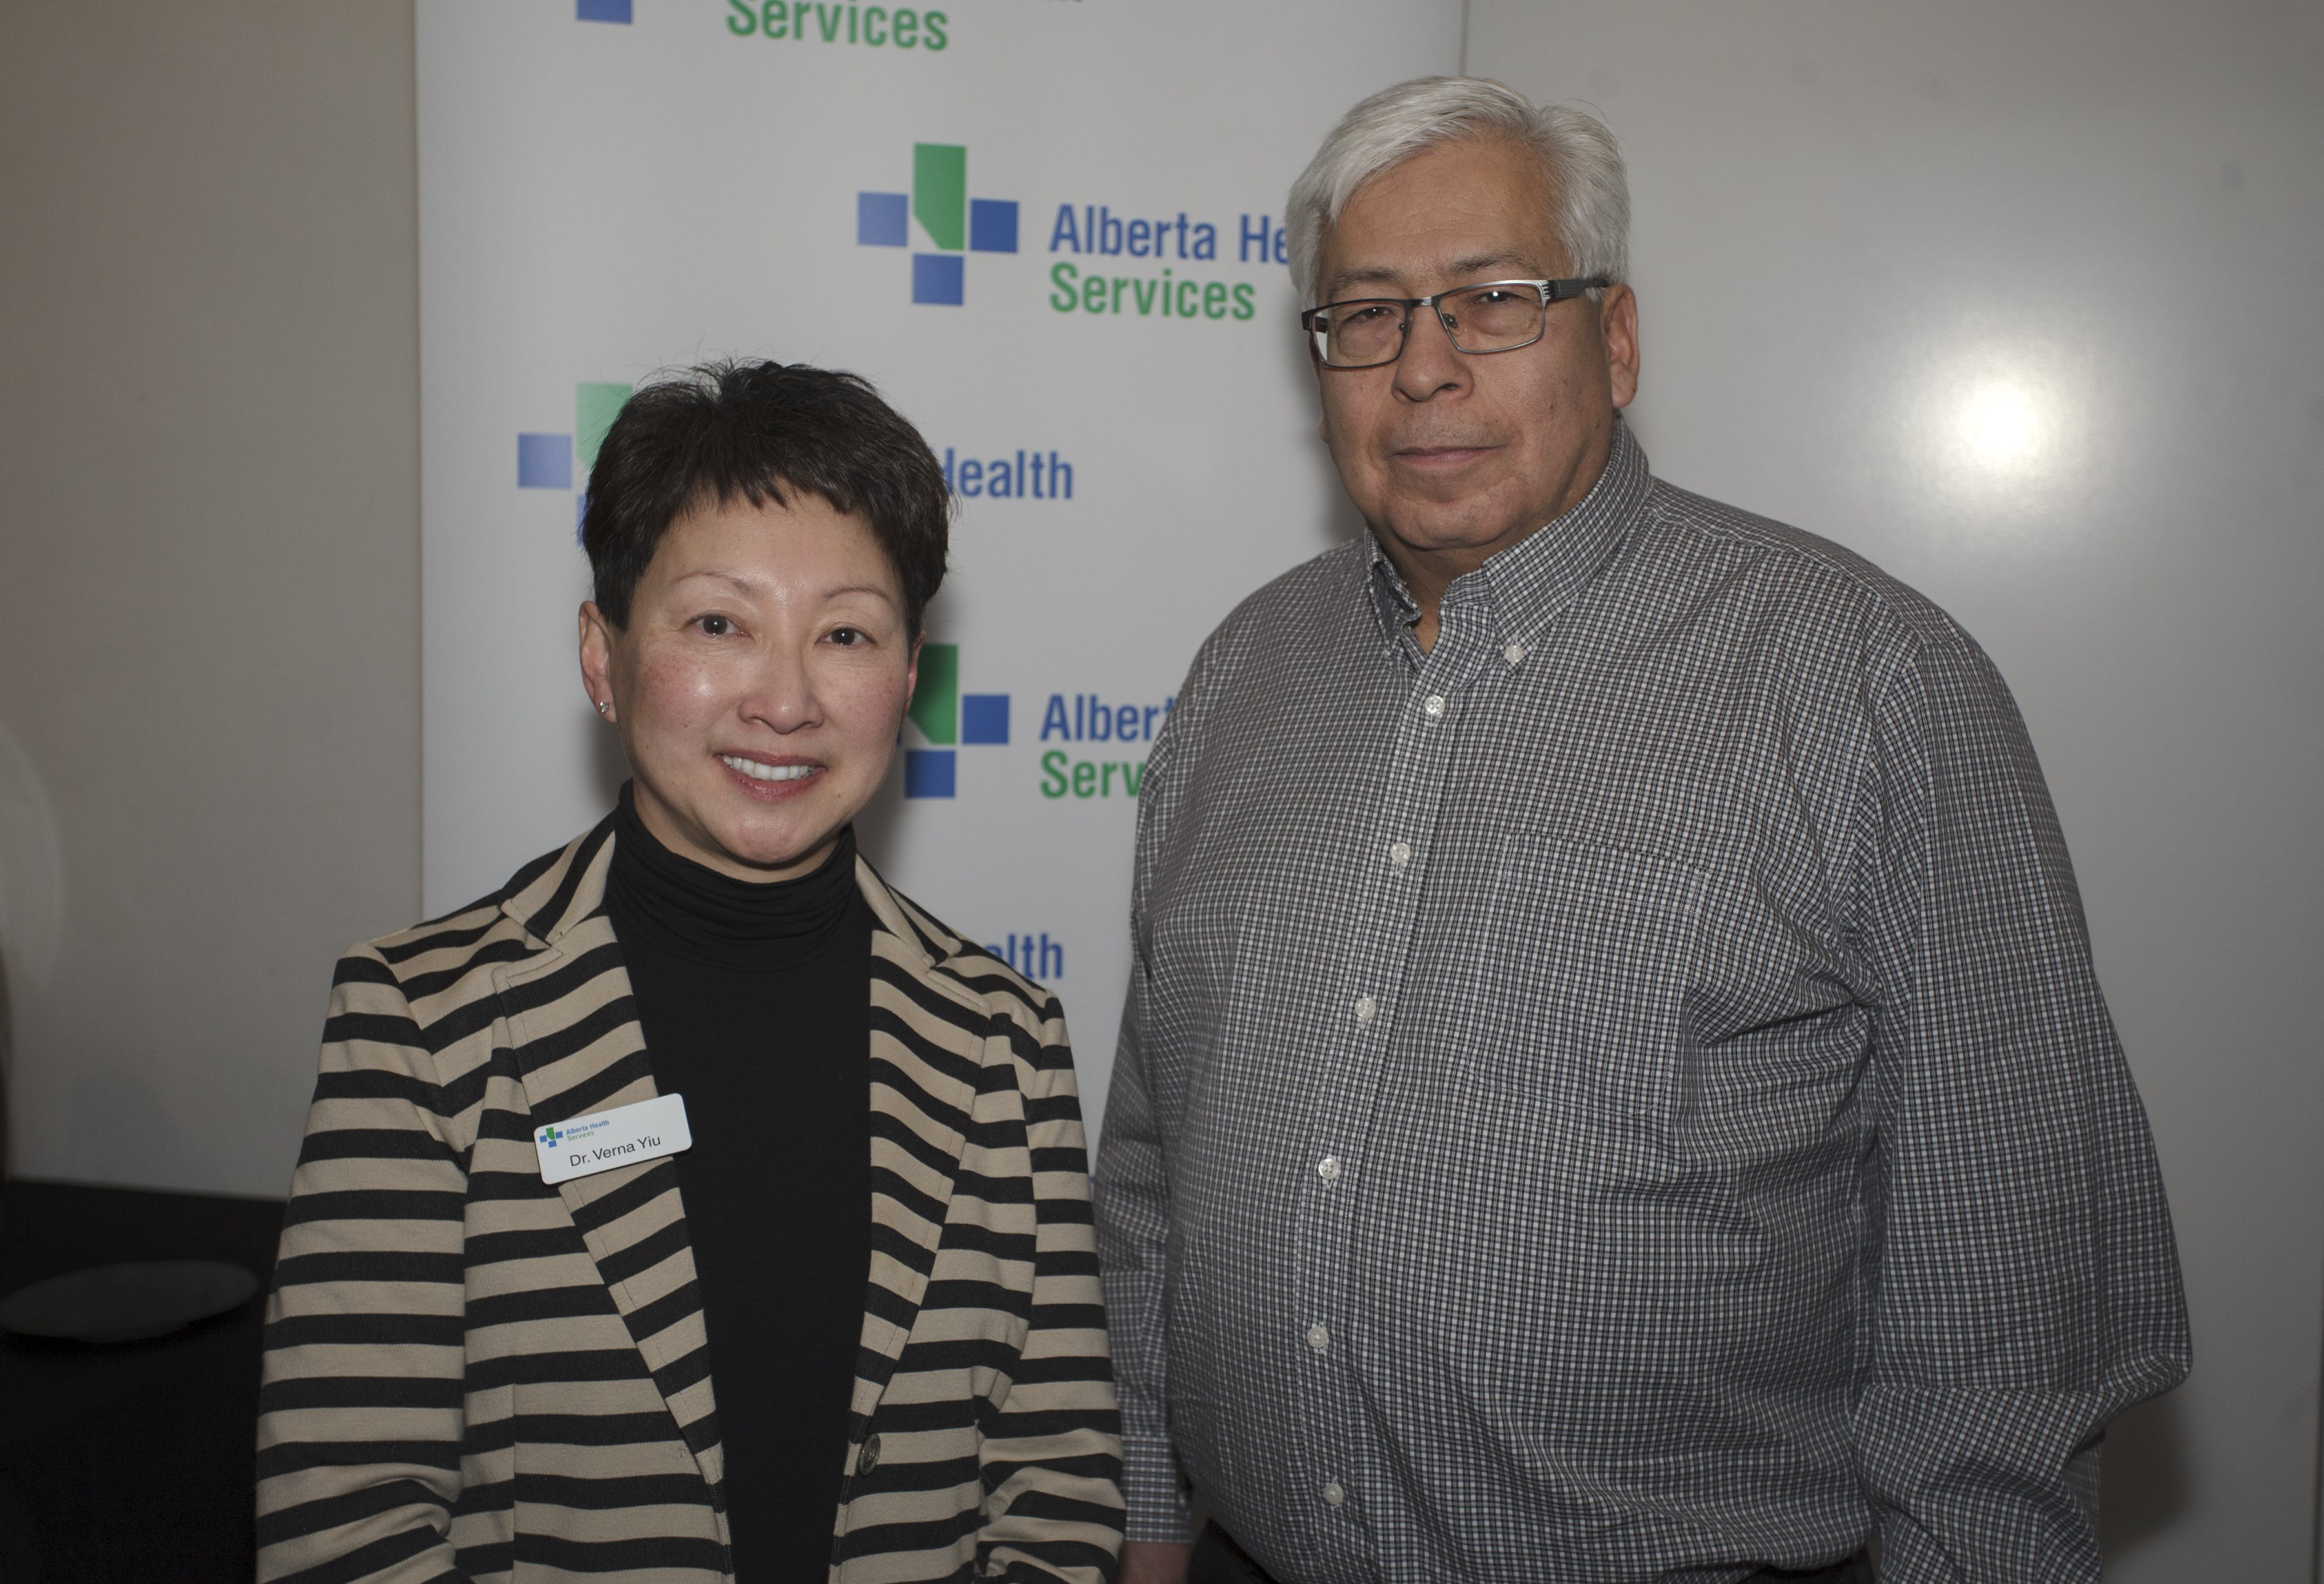 Conversation with Dr. Verna Yiu in Calgary